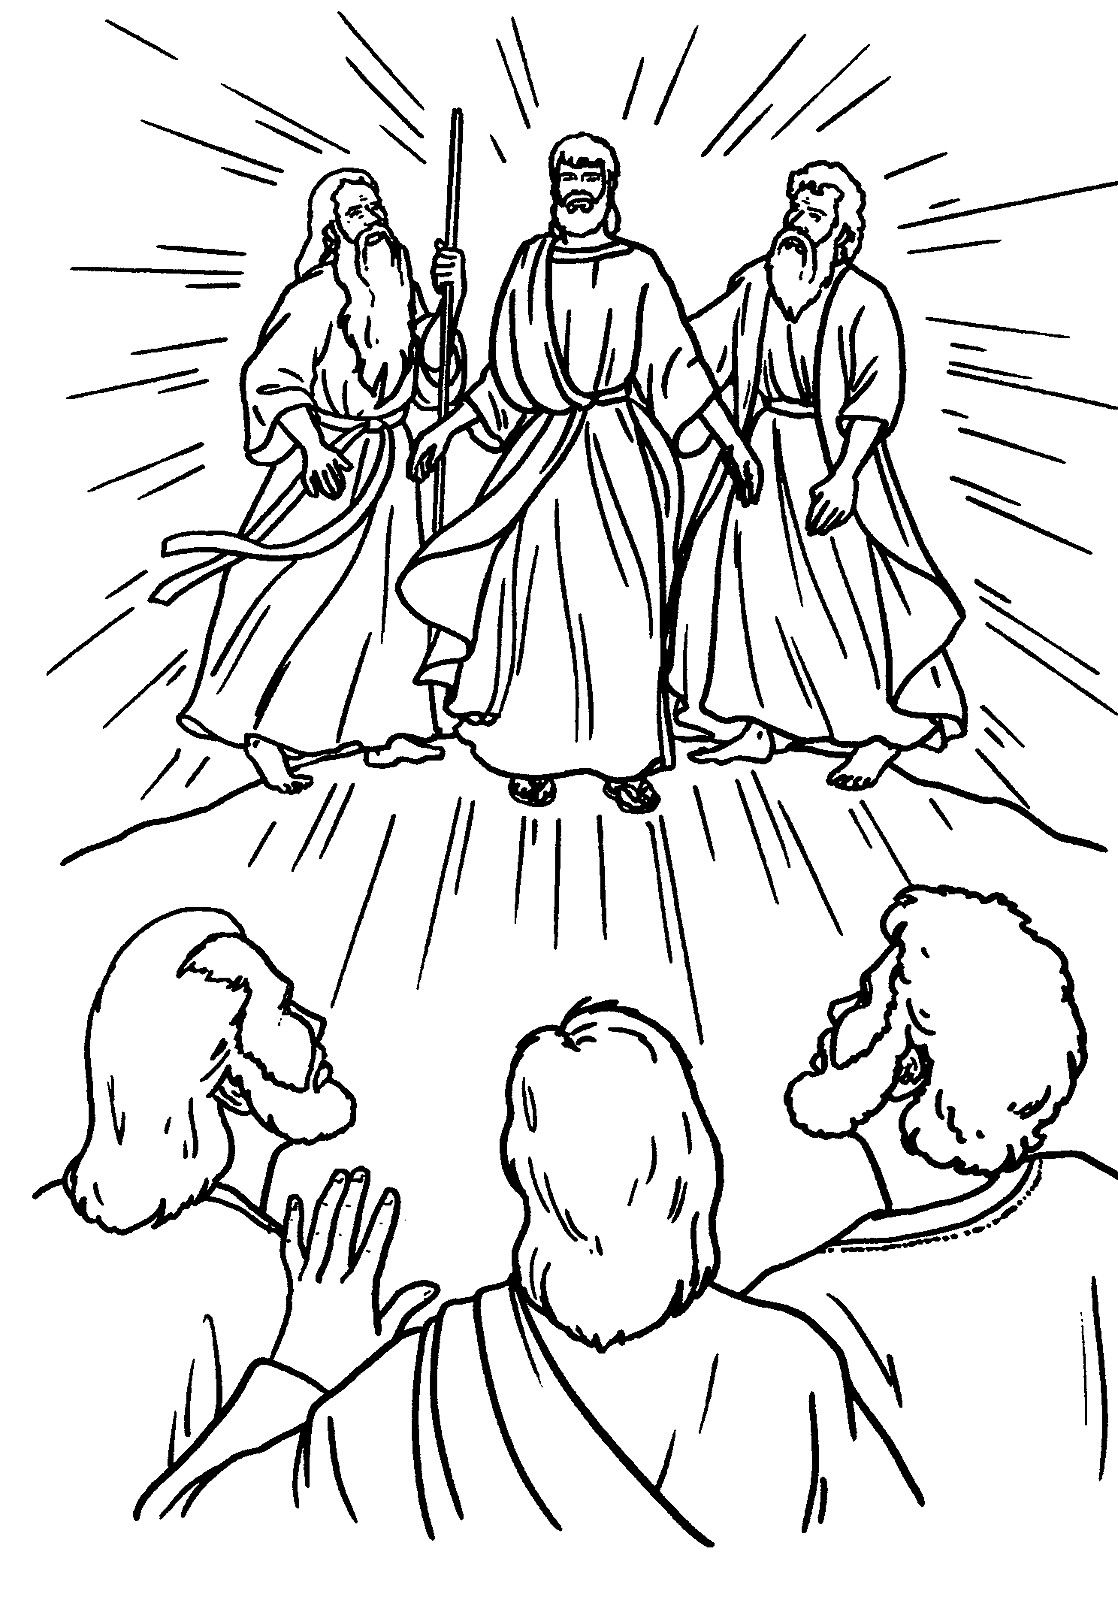 The Transfiguration Catholic Coloring Page Jesus Coloring Pages Coloring Pages Sunday School Coloring Pages